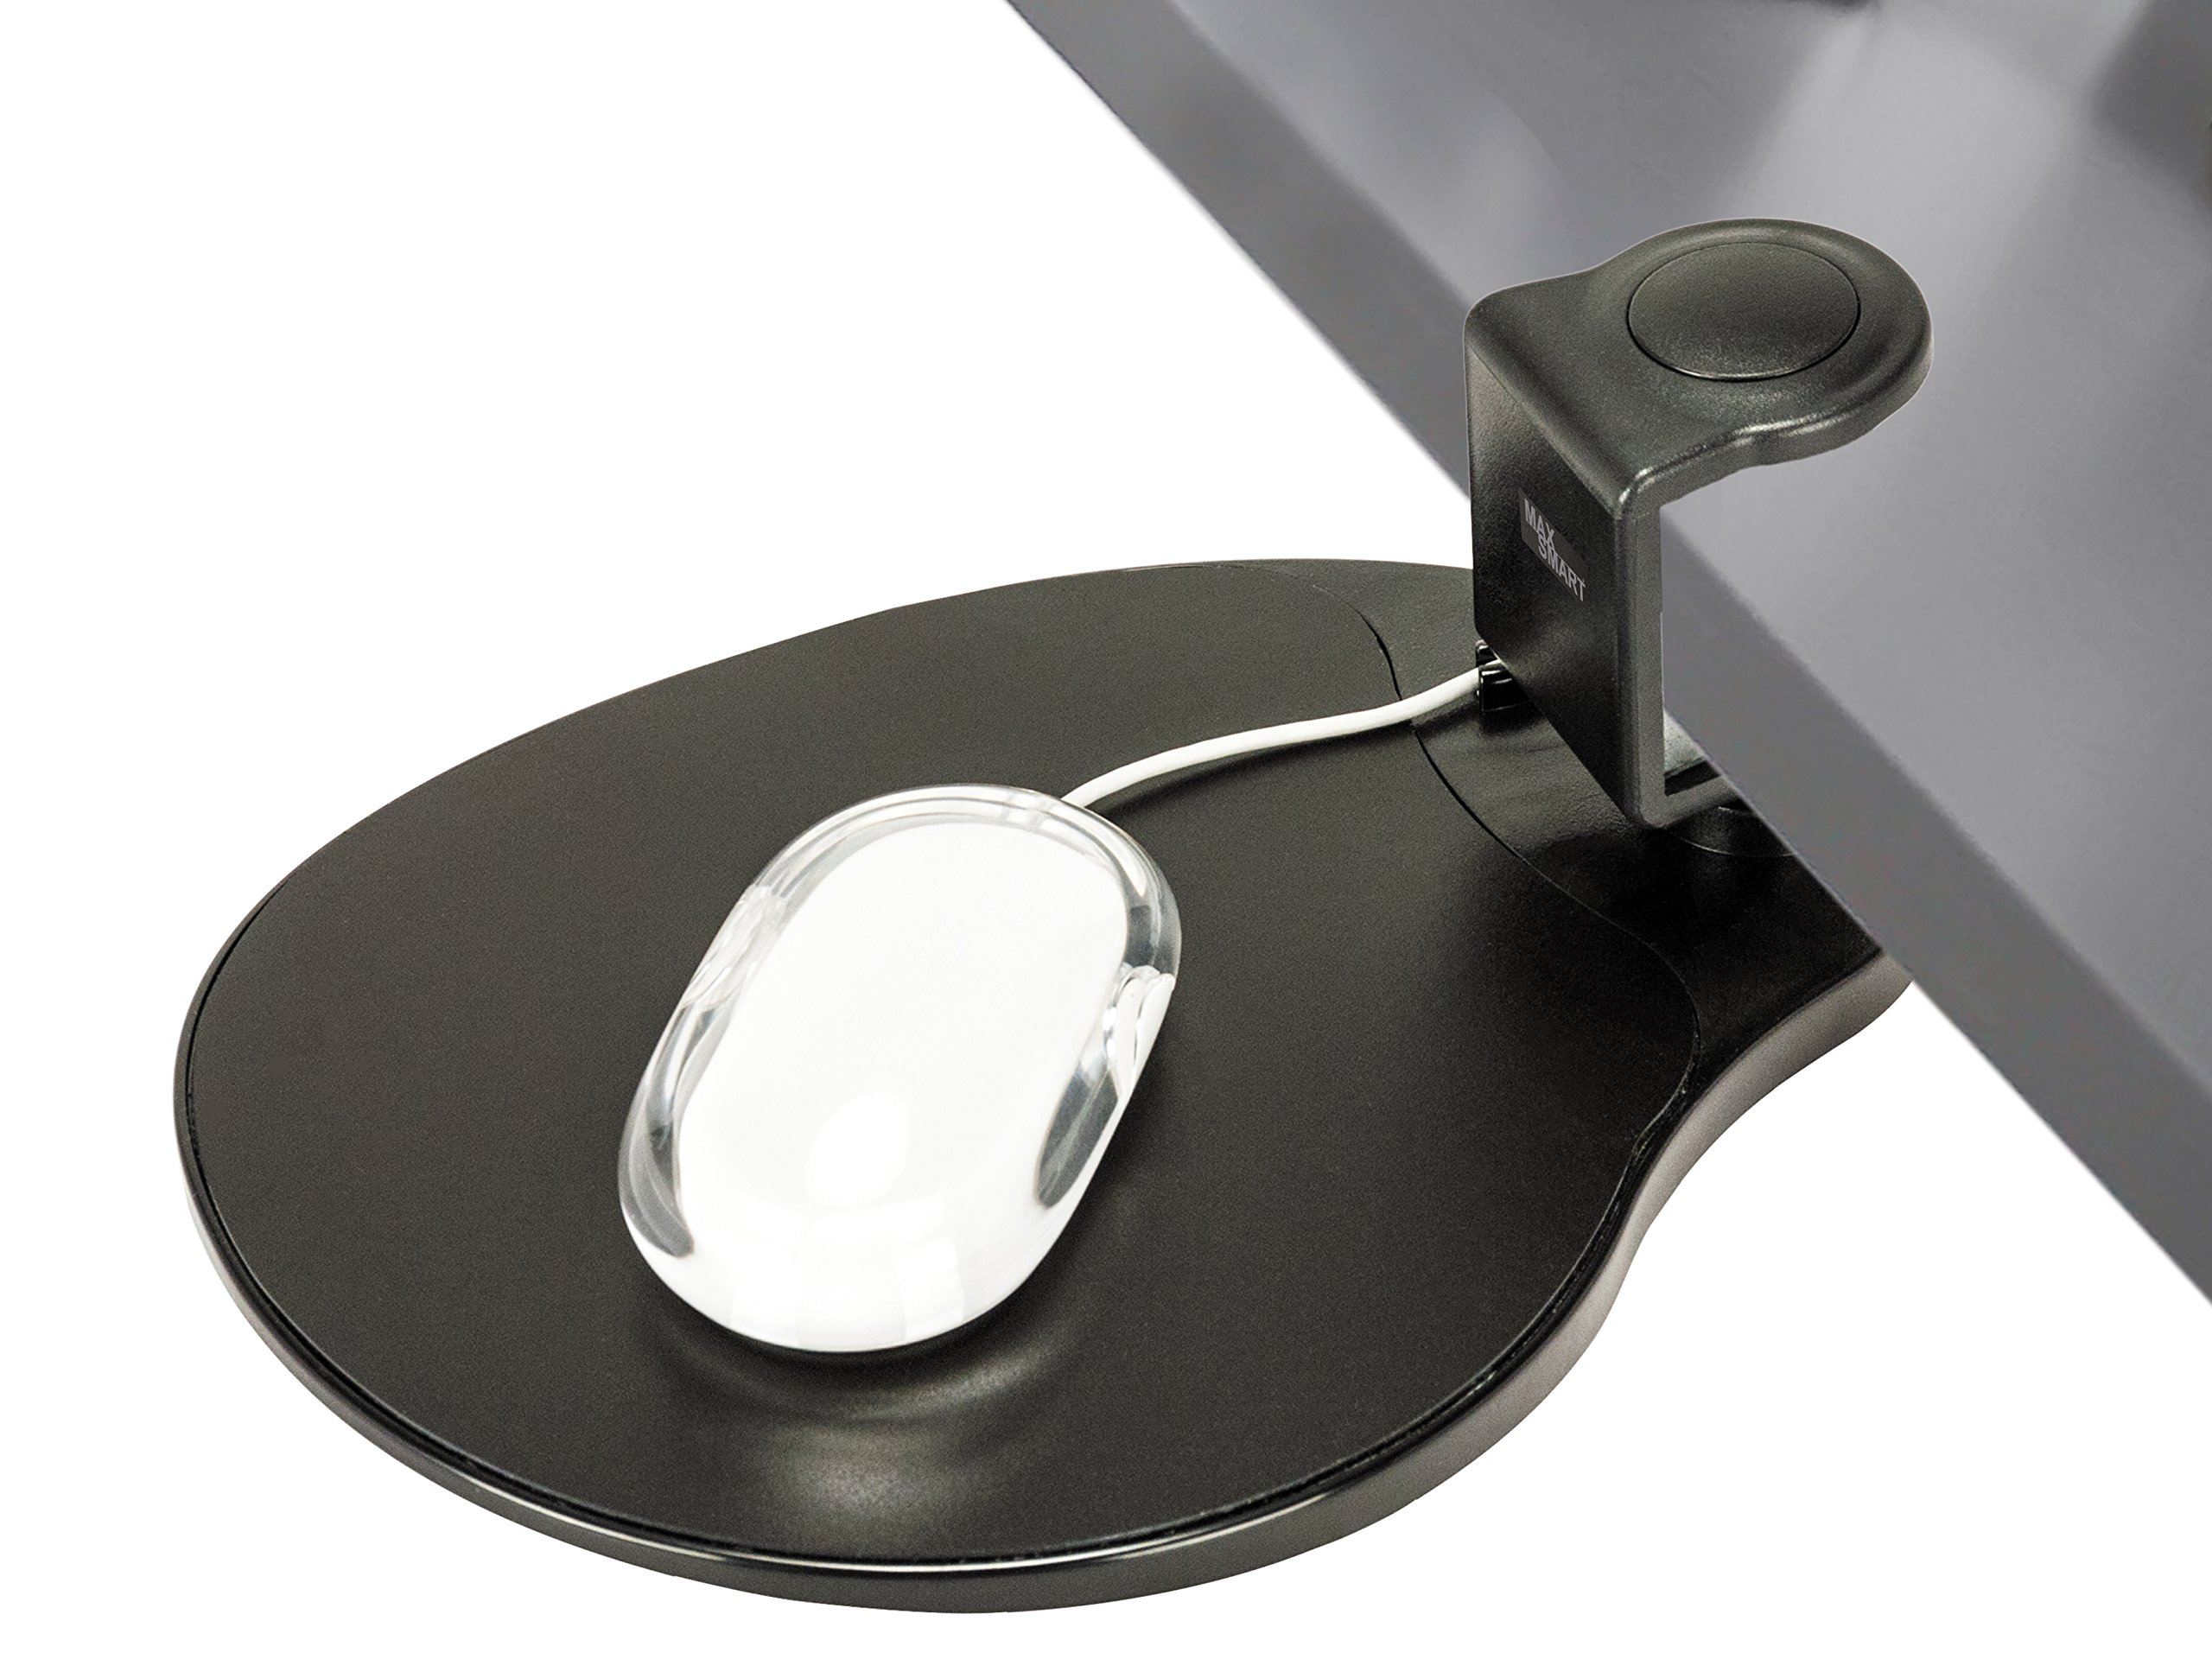 Clamp on Mouse Platform/Clip on Mouse Pad Rotating 360 Degree, Ergonomic Mouse Tray Attachment, Office Mouse Pad, Slide Out Mouse Tray